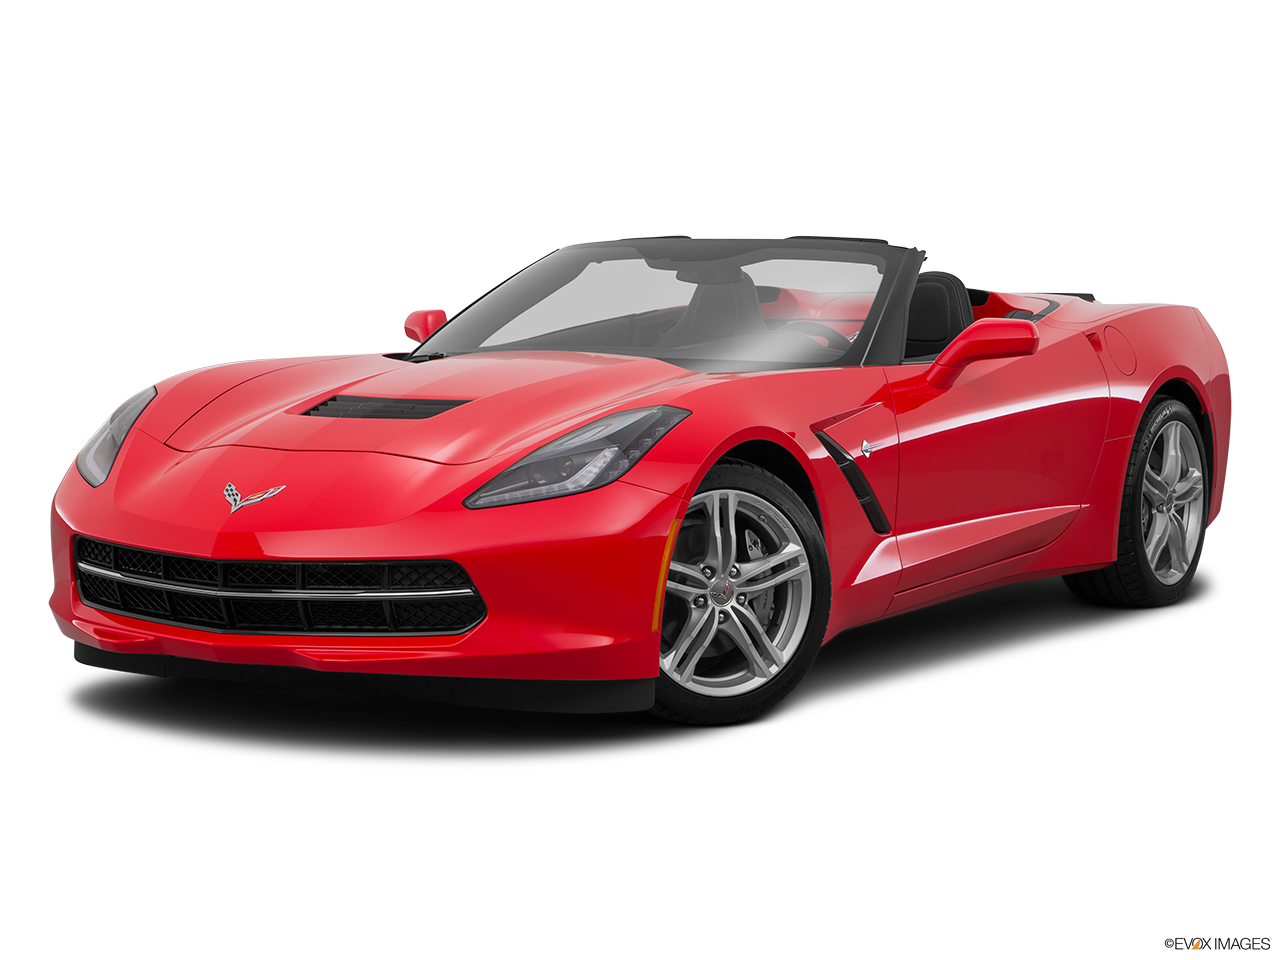 Corvette Car File PNG Image